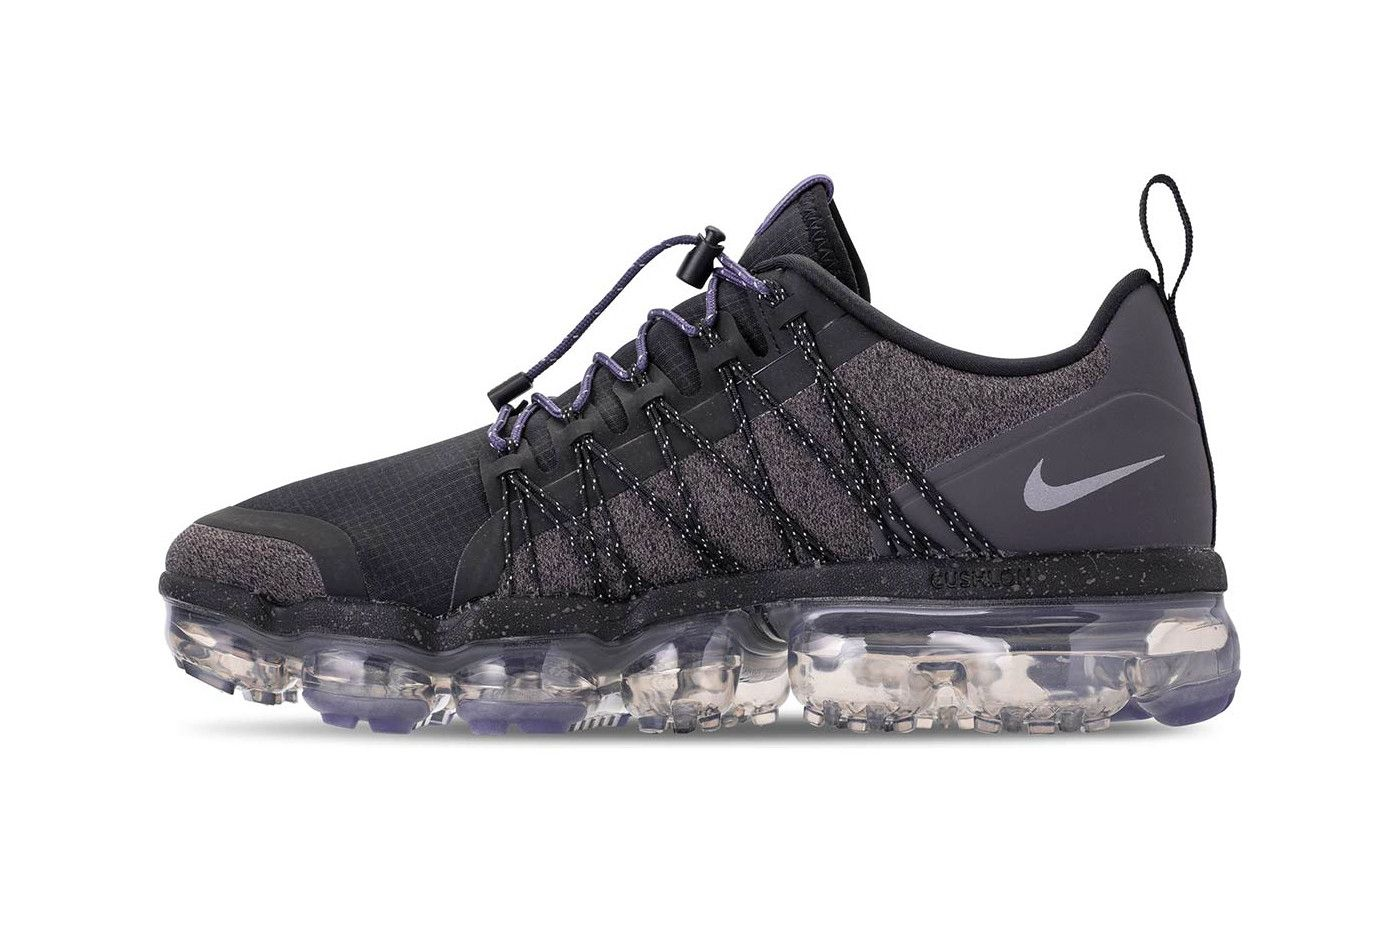 38dbbae2710 Nike VaporMax Run Utility Reflect Silver Release Black Thunder Grey Sanded  Purple Womens